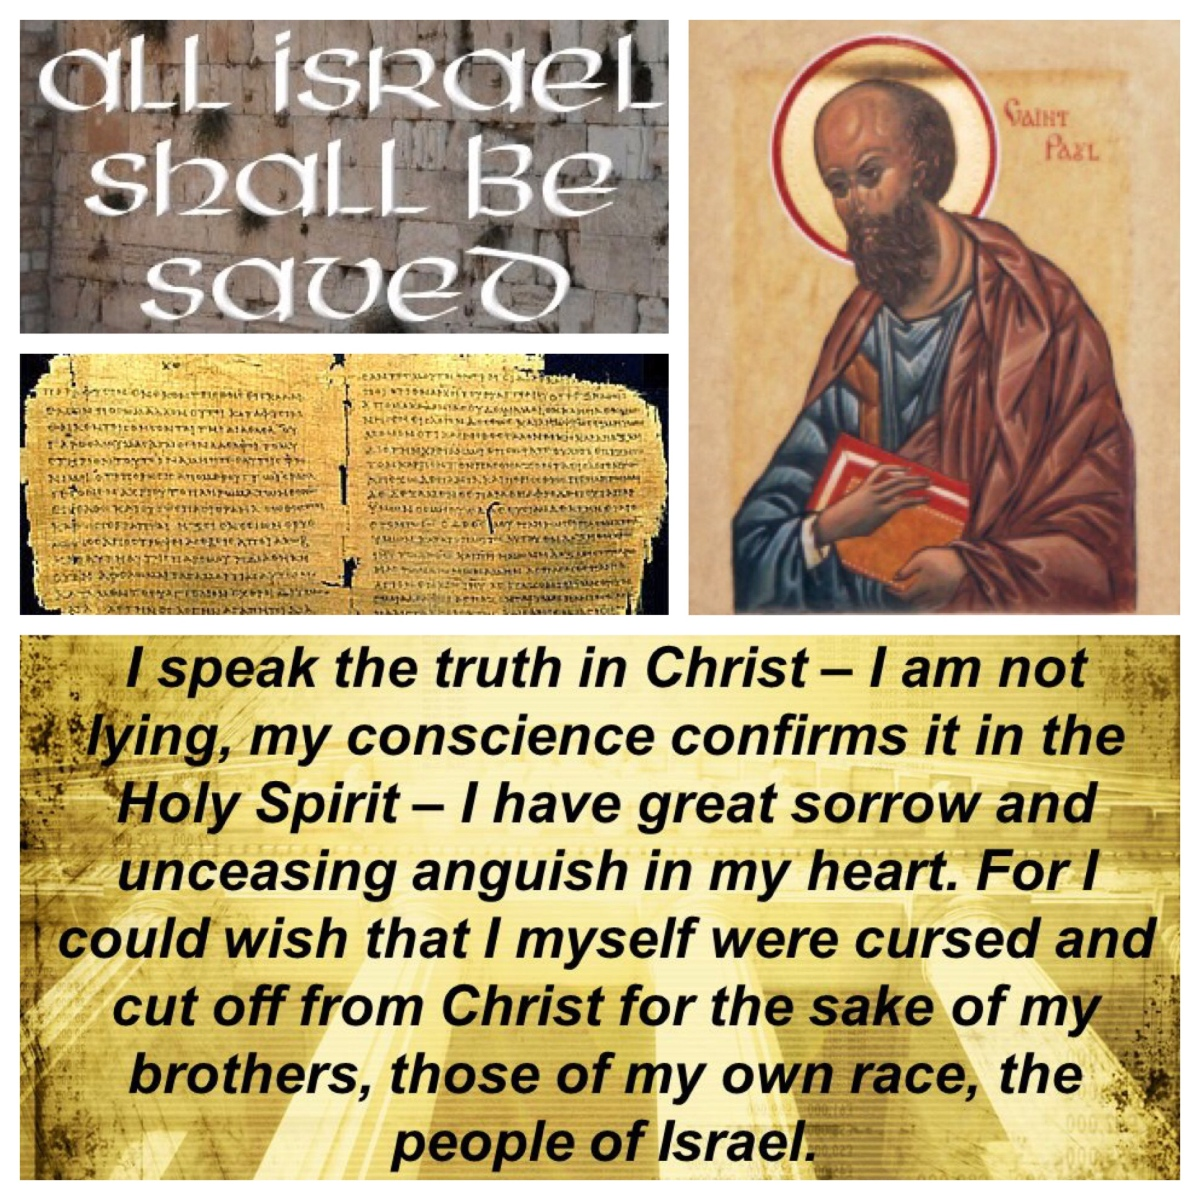 Praying to be cursed: Paul, the passionate partisan for the cause (Rom 9:3; Pentecost10A)